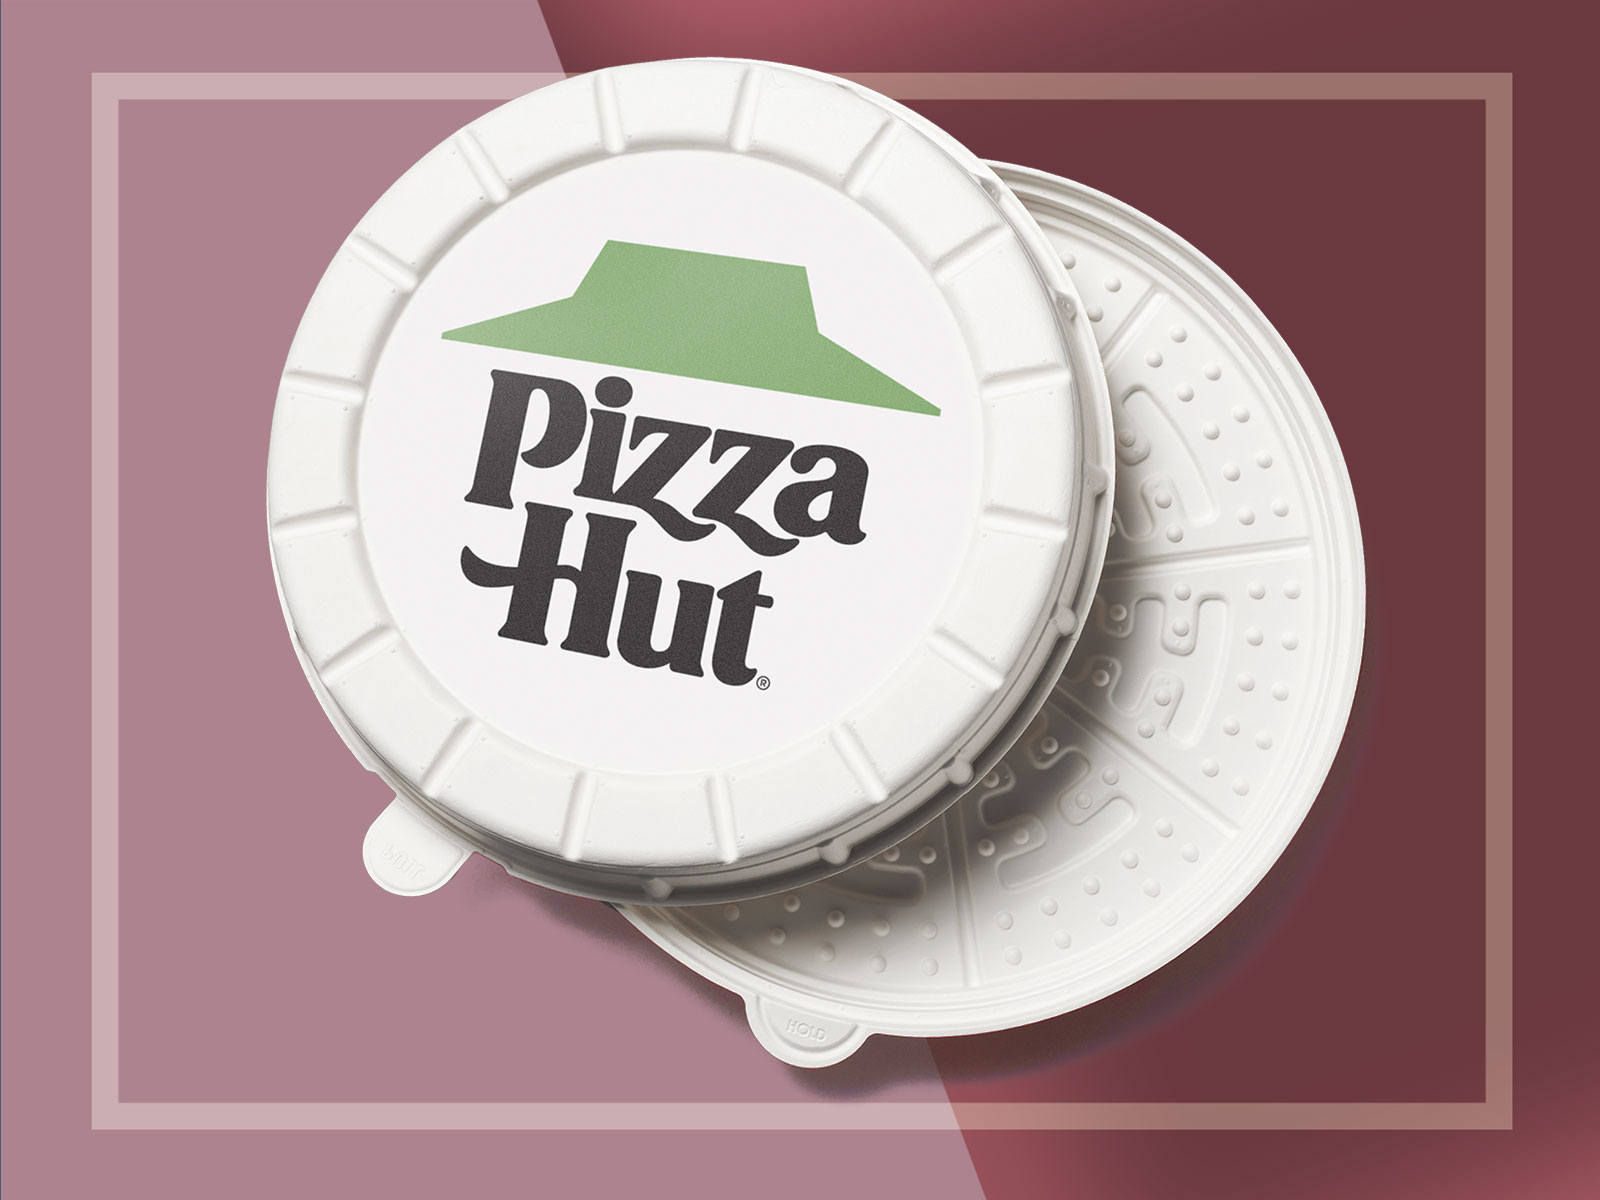 pizza-hut-round-box-FT-BLOG1019.jpg